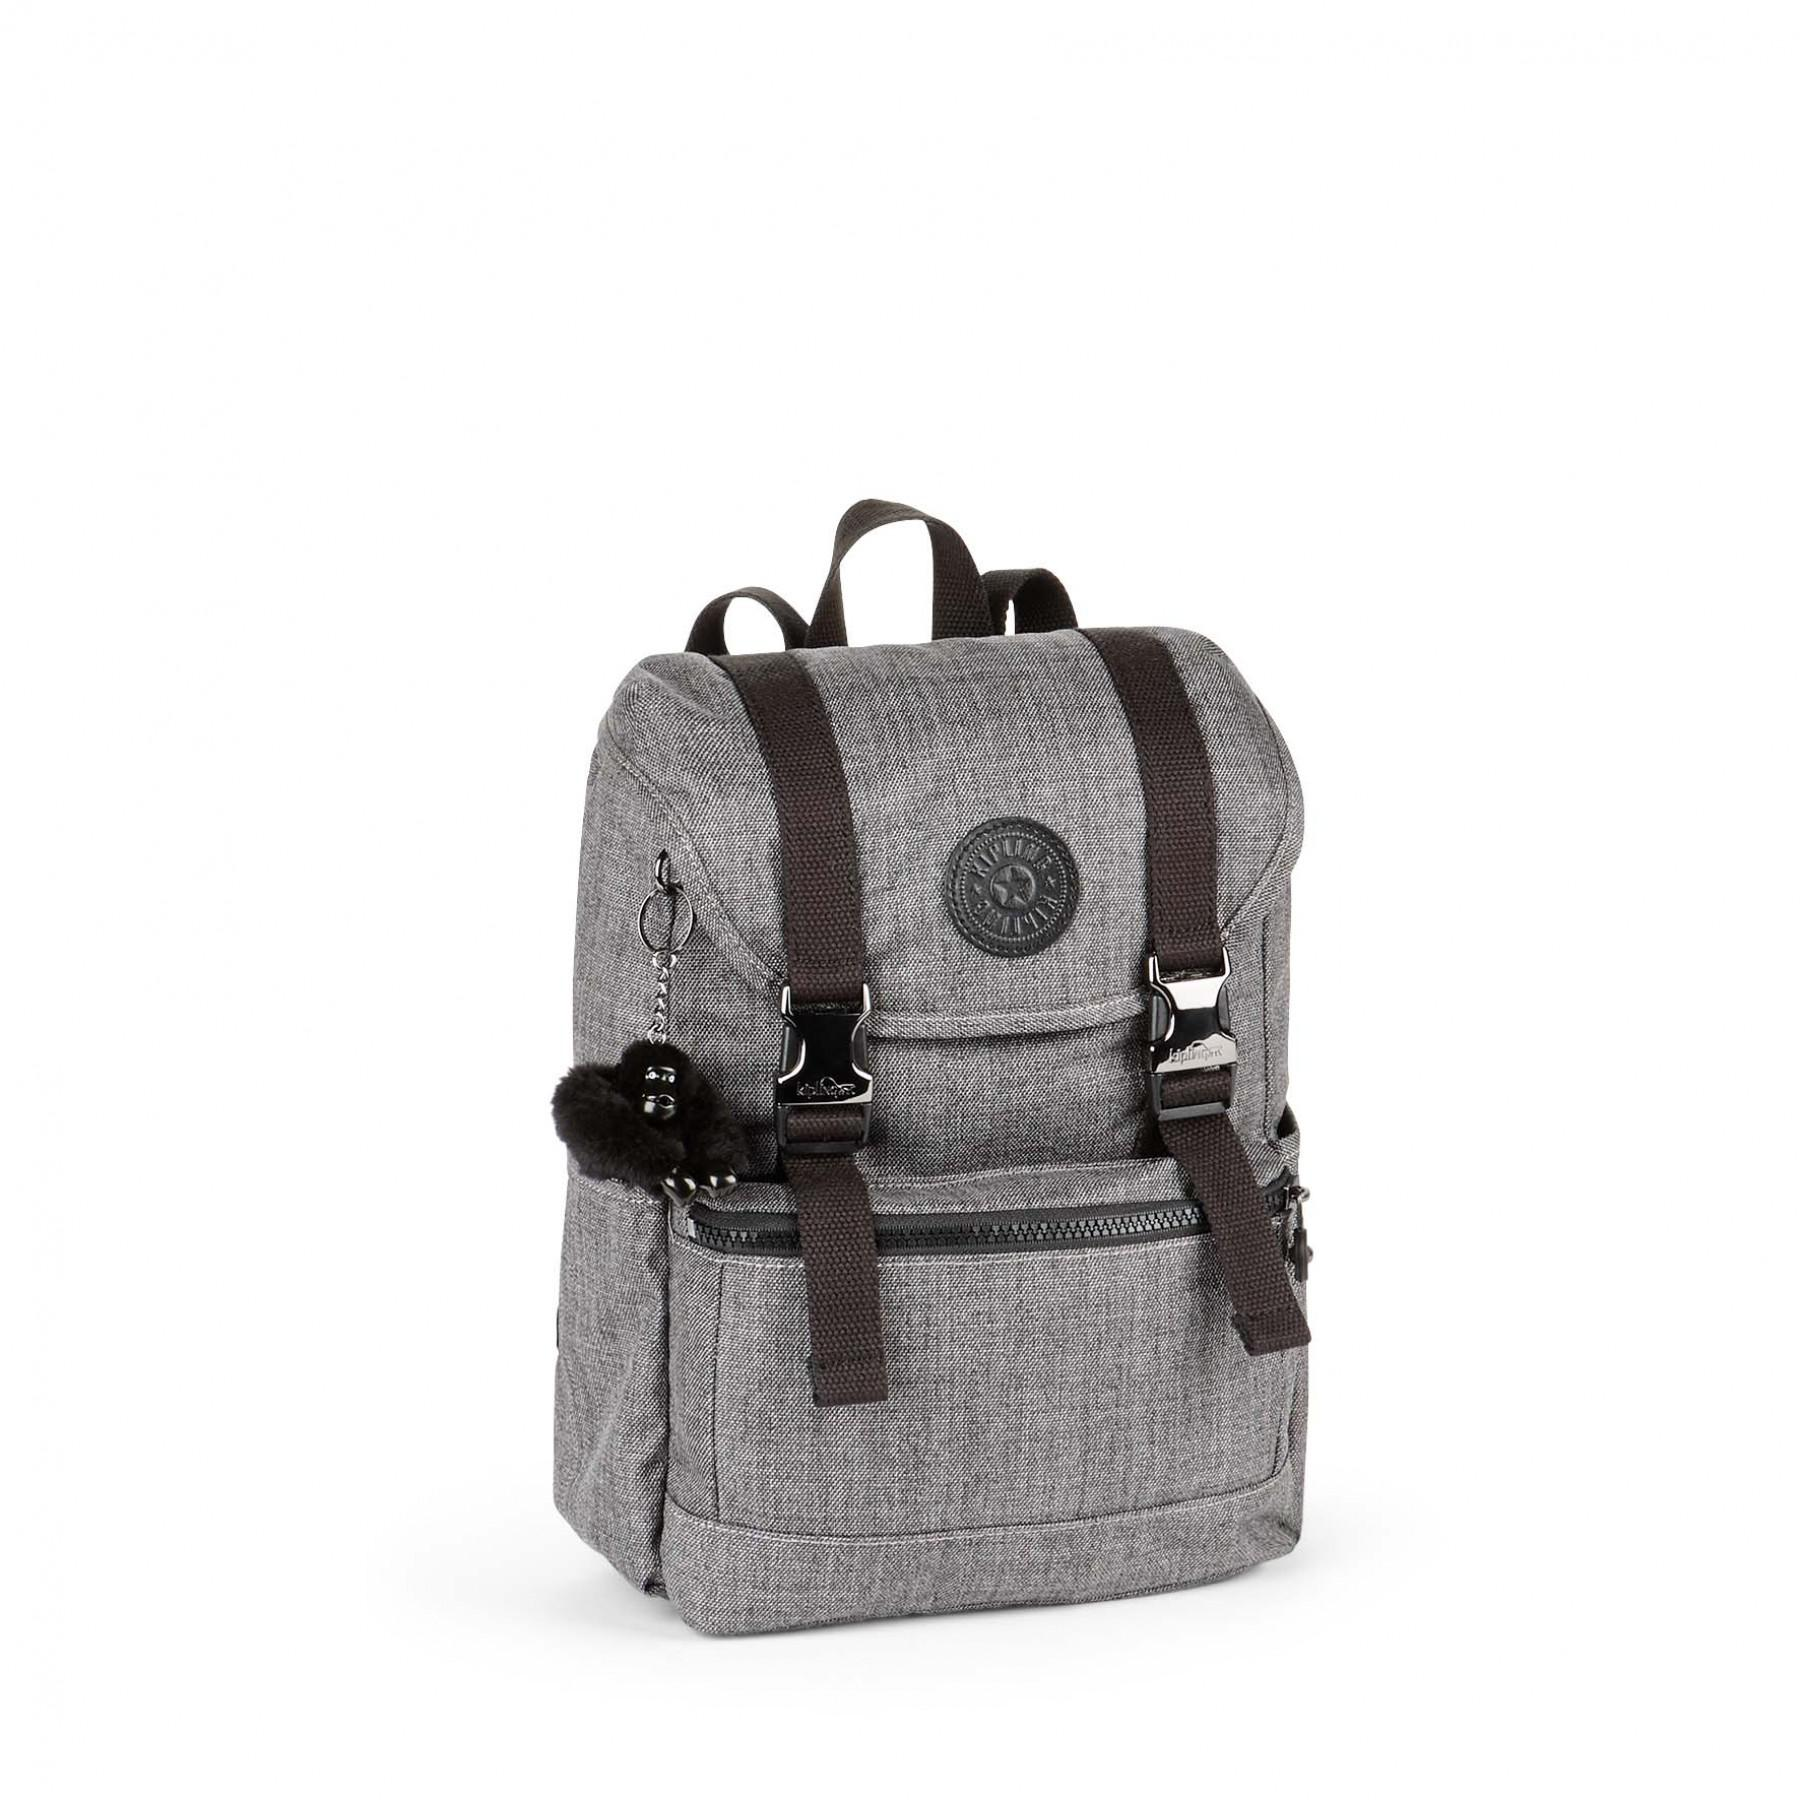 Lyst - Kipling Experience S Essential in Gray for Men